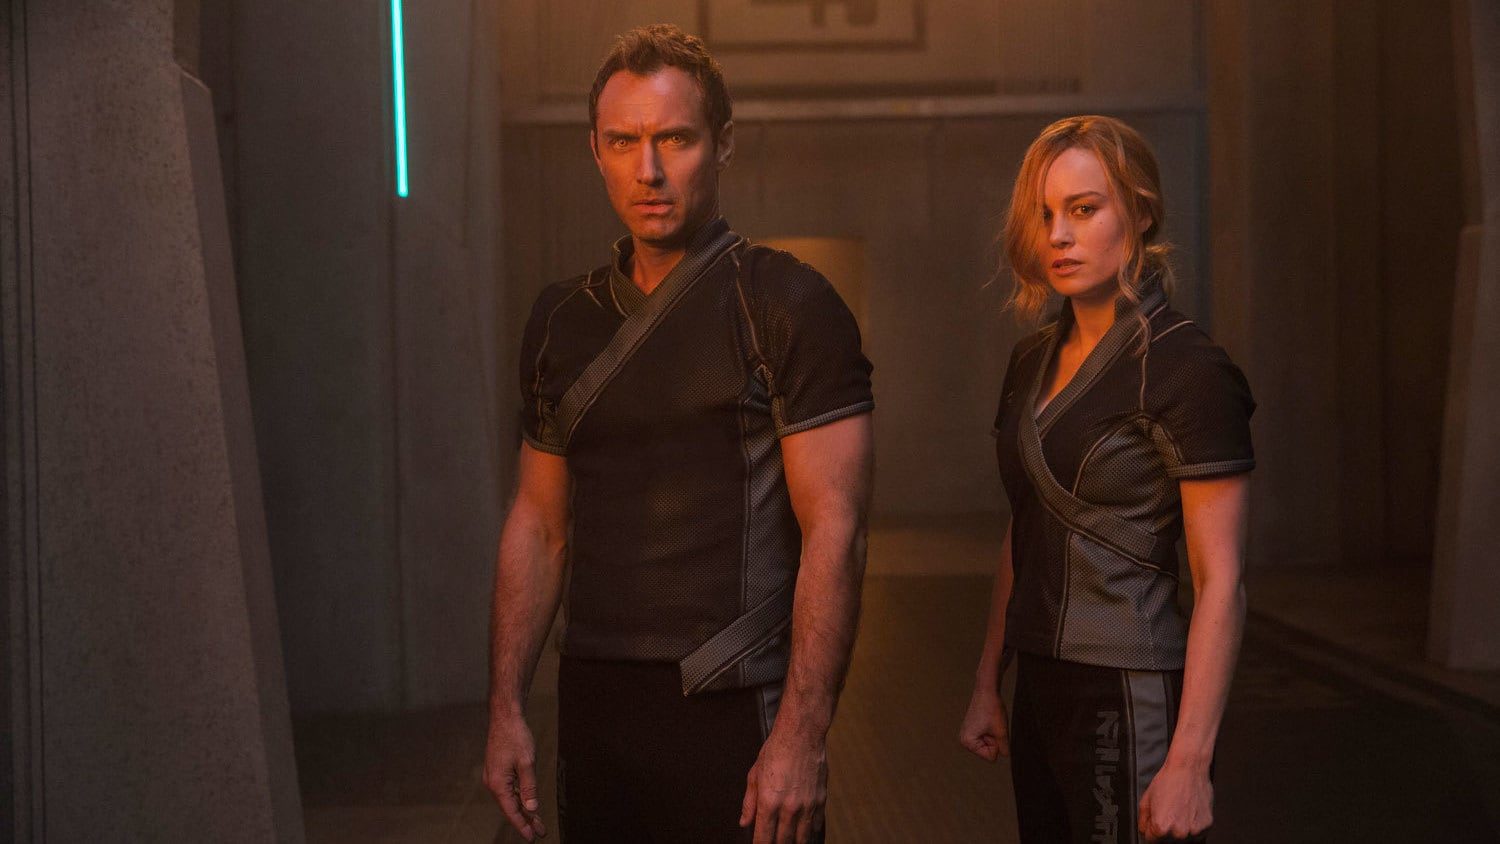 Jude Law as Yon-Rogg and Brie Larson as Vers in Captain Marvel